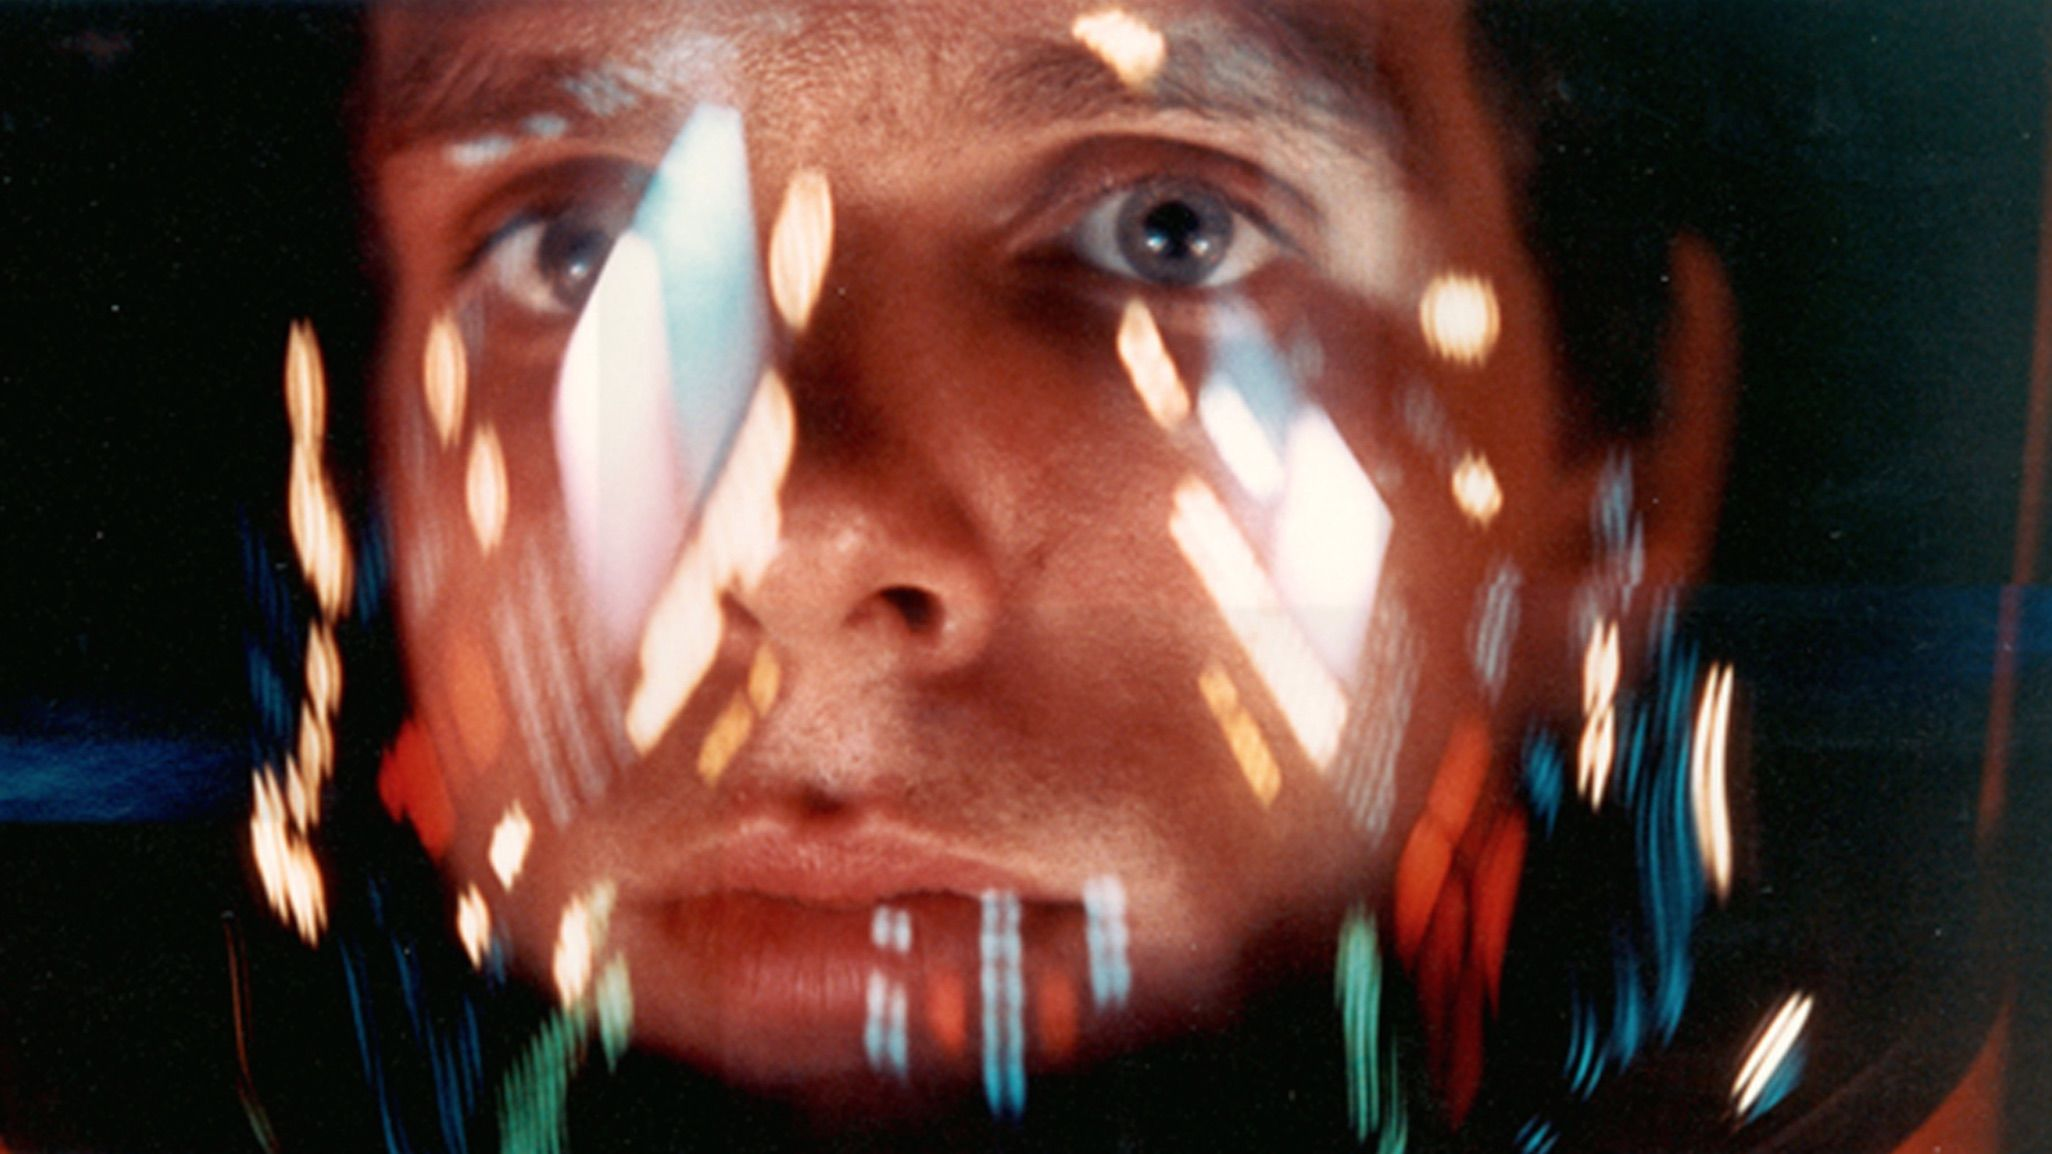 Judith Richter Nude 12 out-of-this-world facts about 2001: a space odyssey